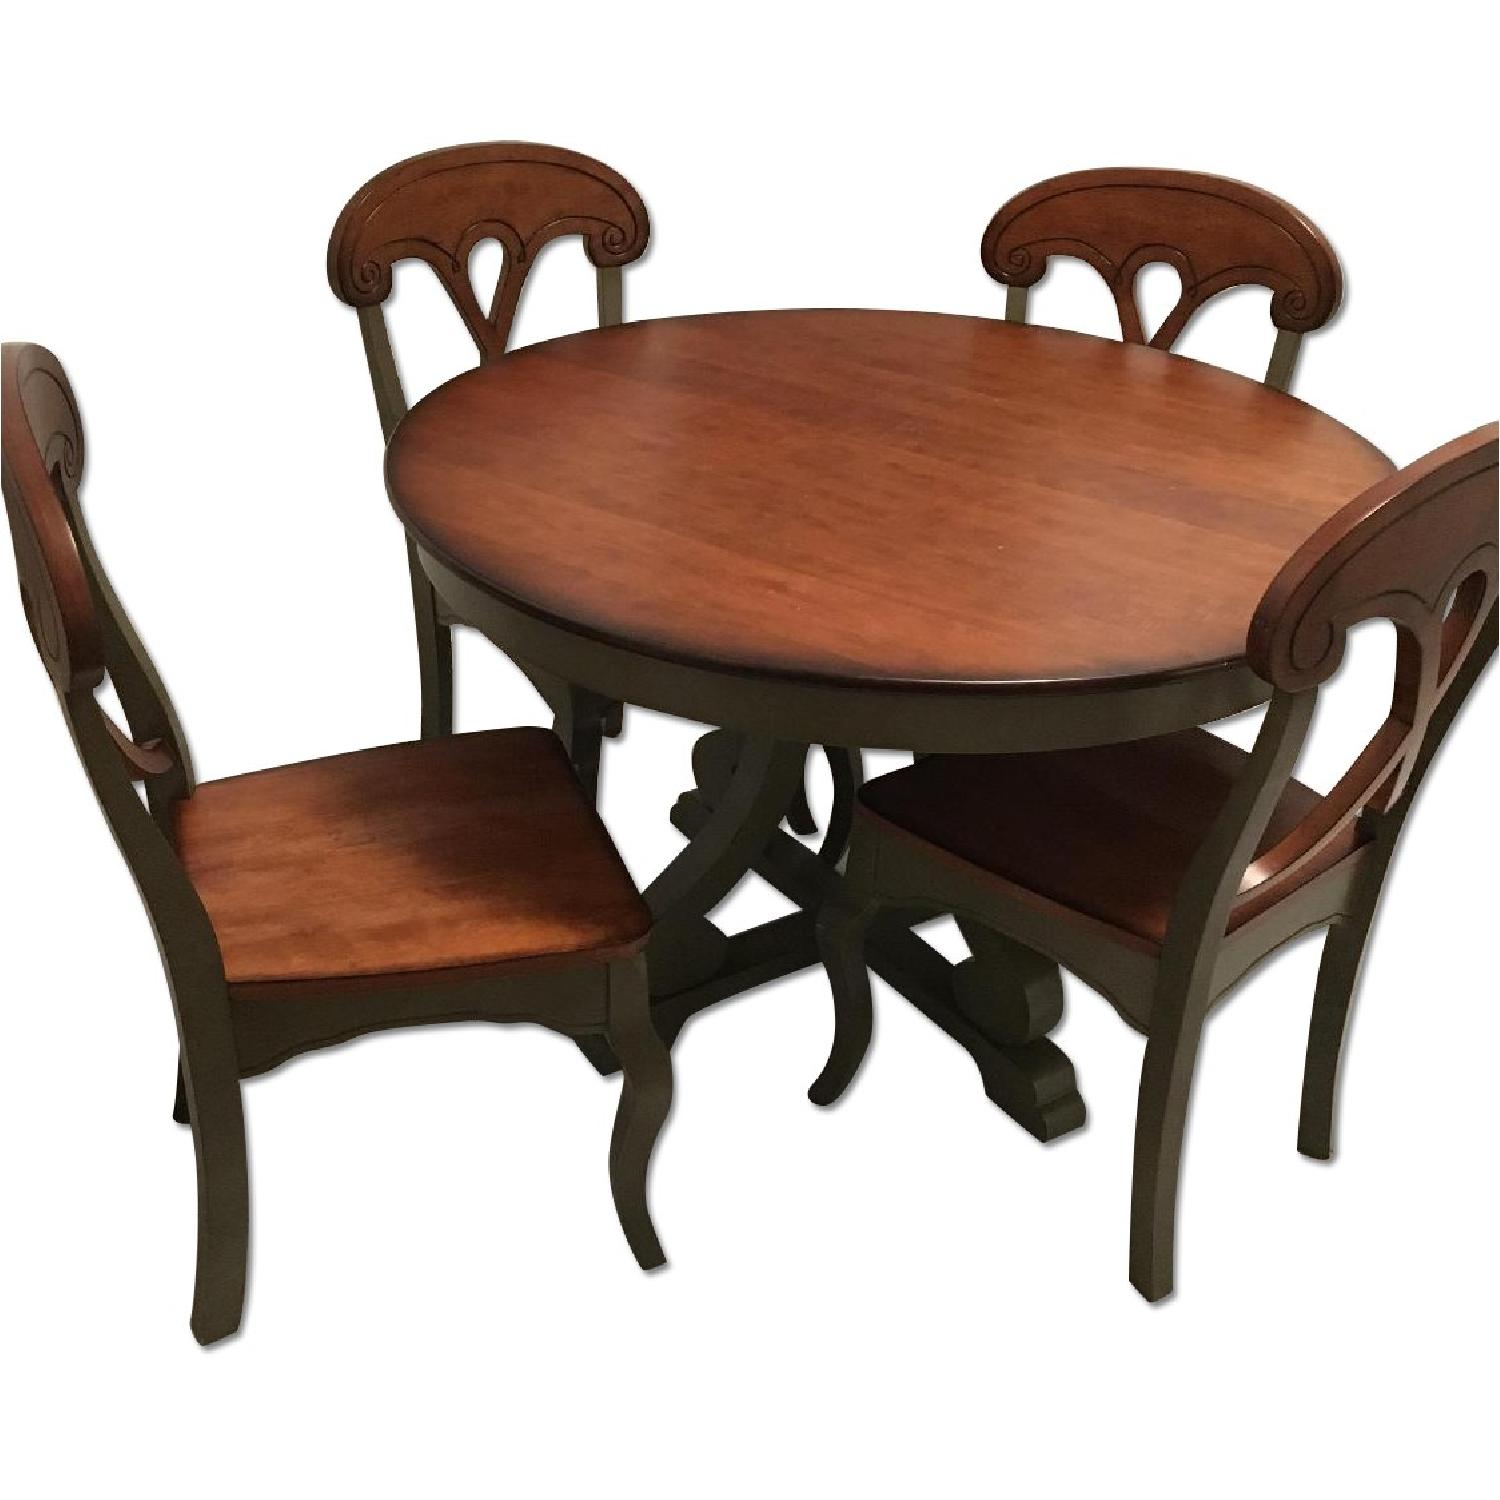 Pier 1 Marchella Sage Round 5 Piece Dining Set ...